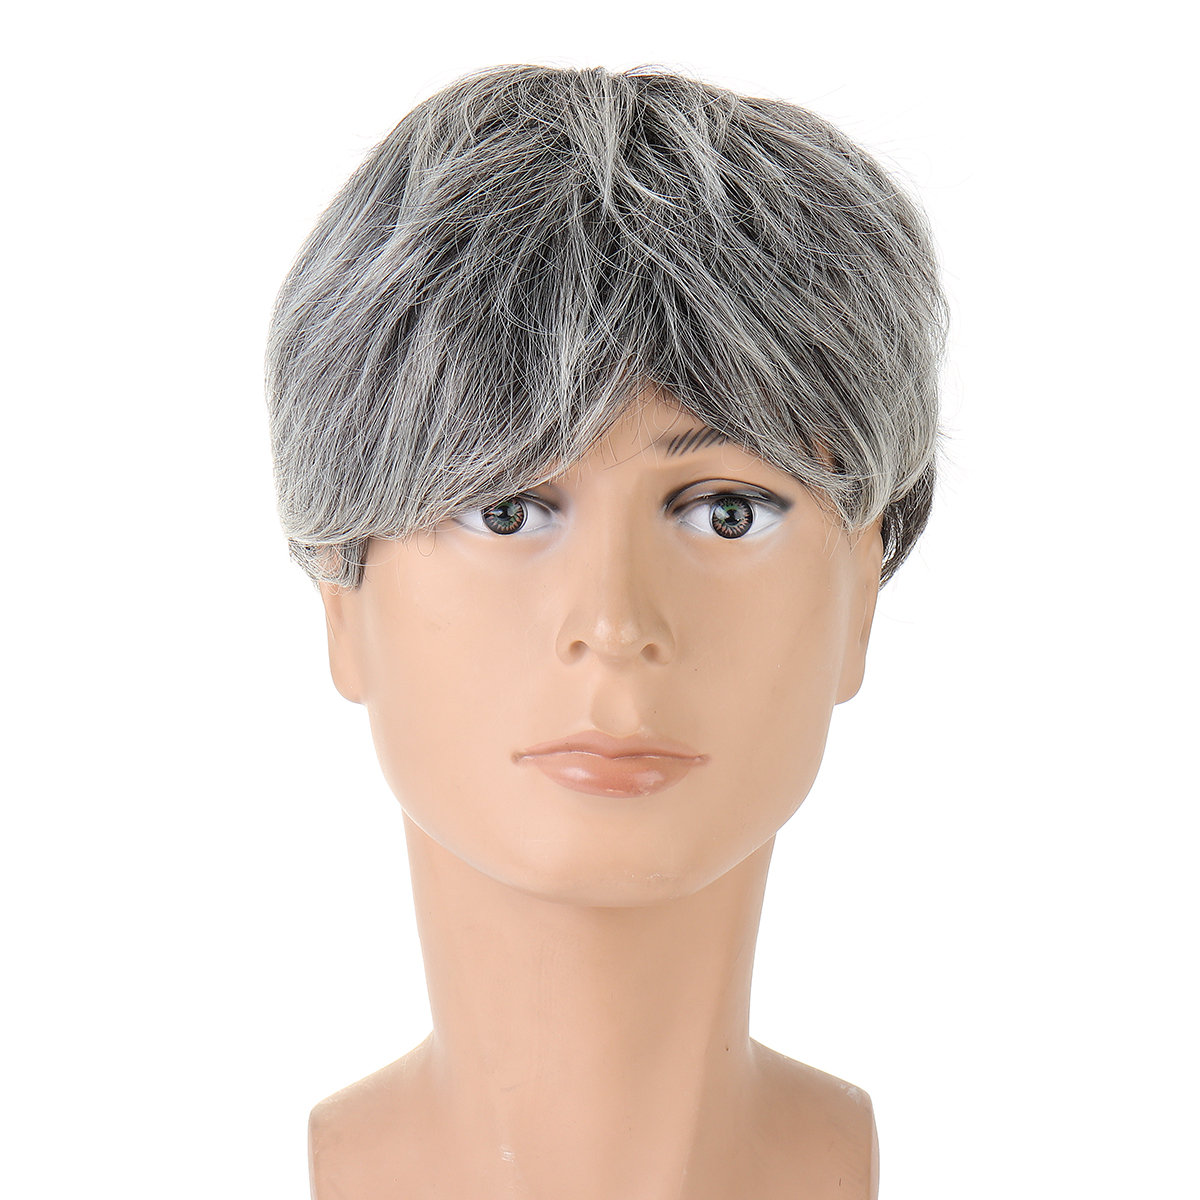 Synthetic Wigs Men's Middle-Aged Short Straight Hair Wigs Silver Gray Wig Props Wig Headgear